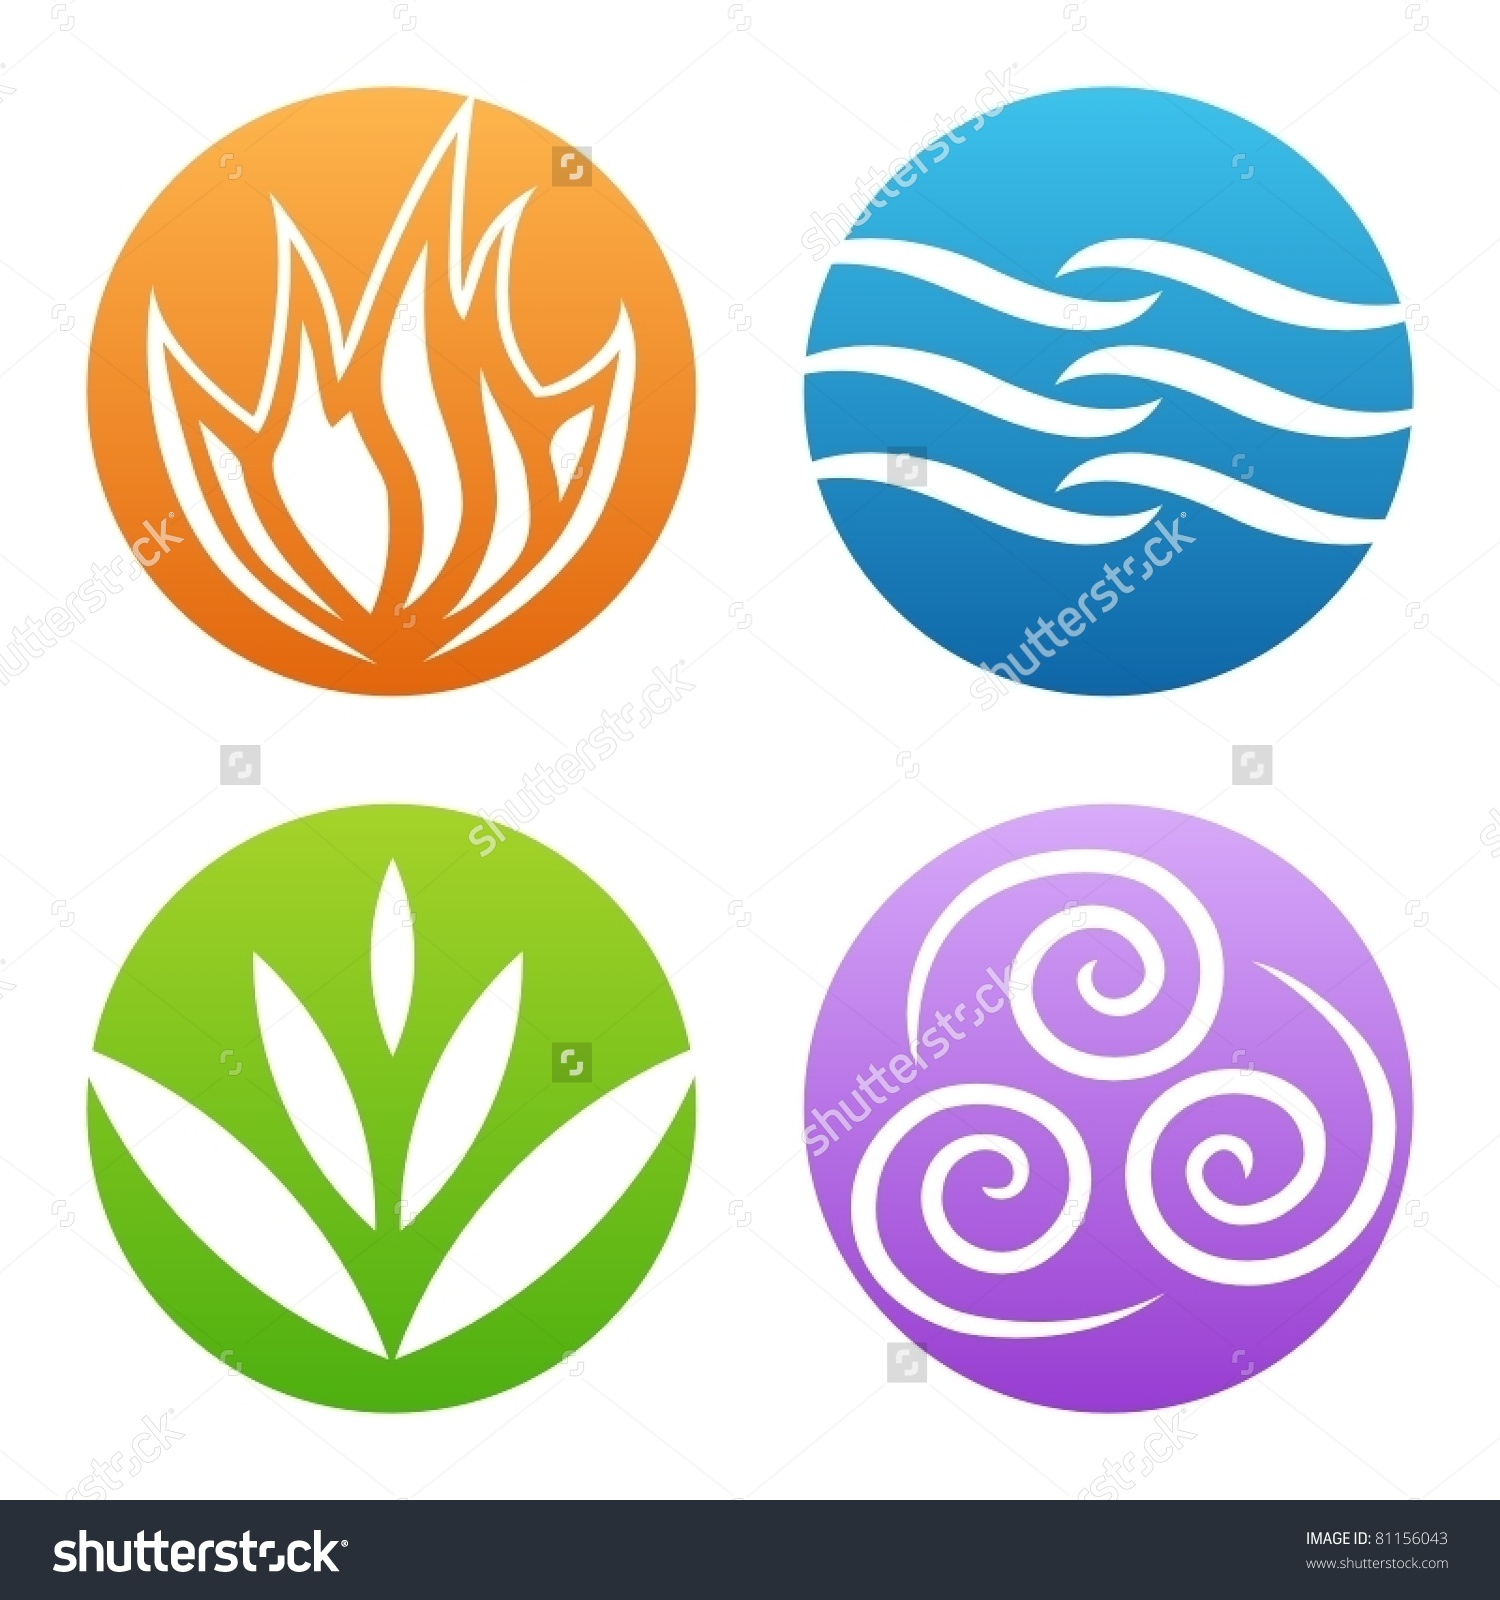 Elements clipart air Vectors Four Shutterstock Water Stock